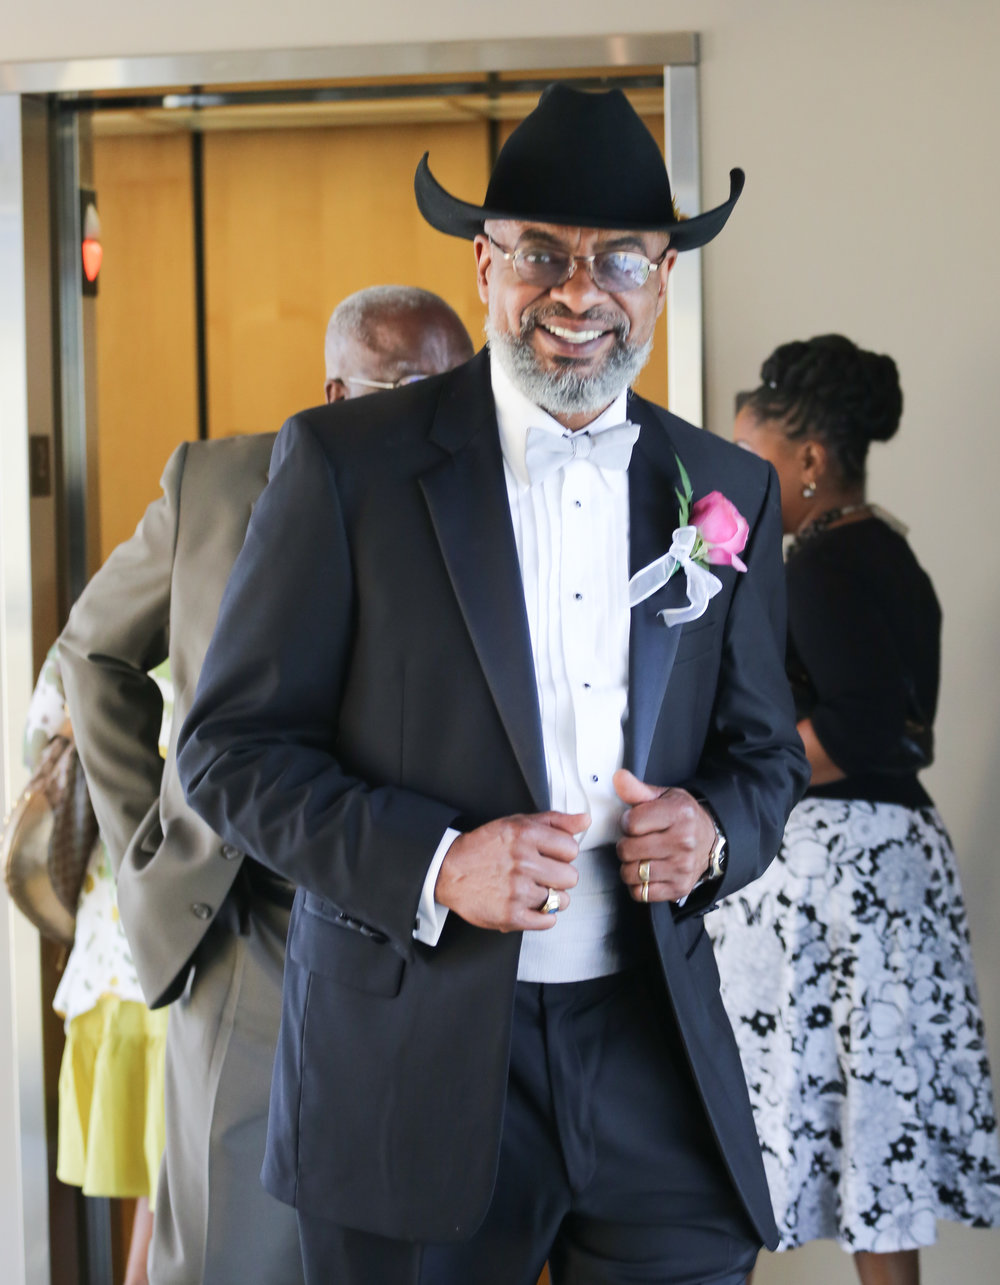 5-24-14_Errol Ebanks_The Finney Wedding_0256.jpg